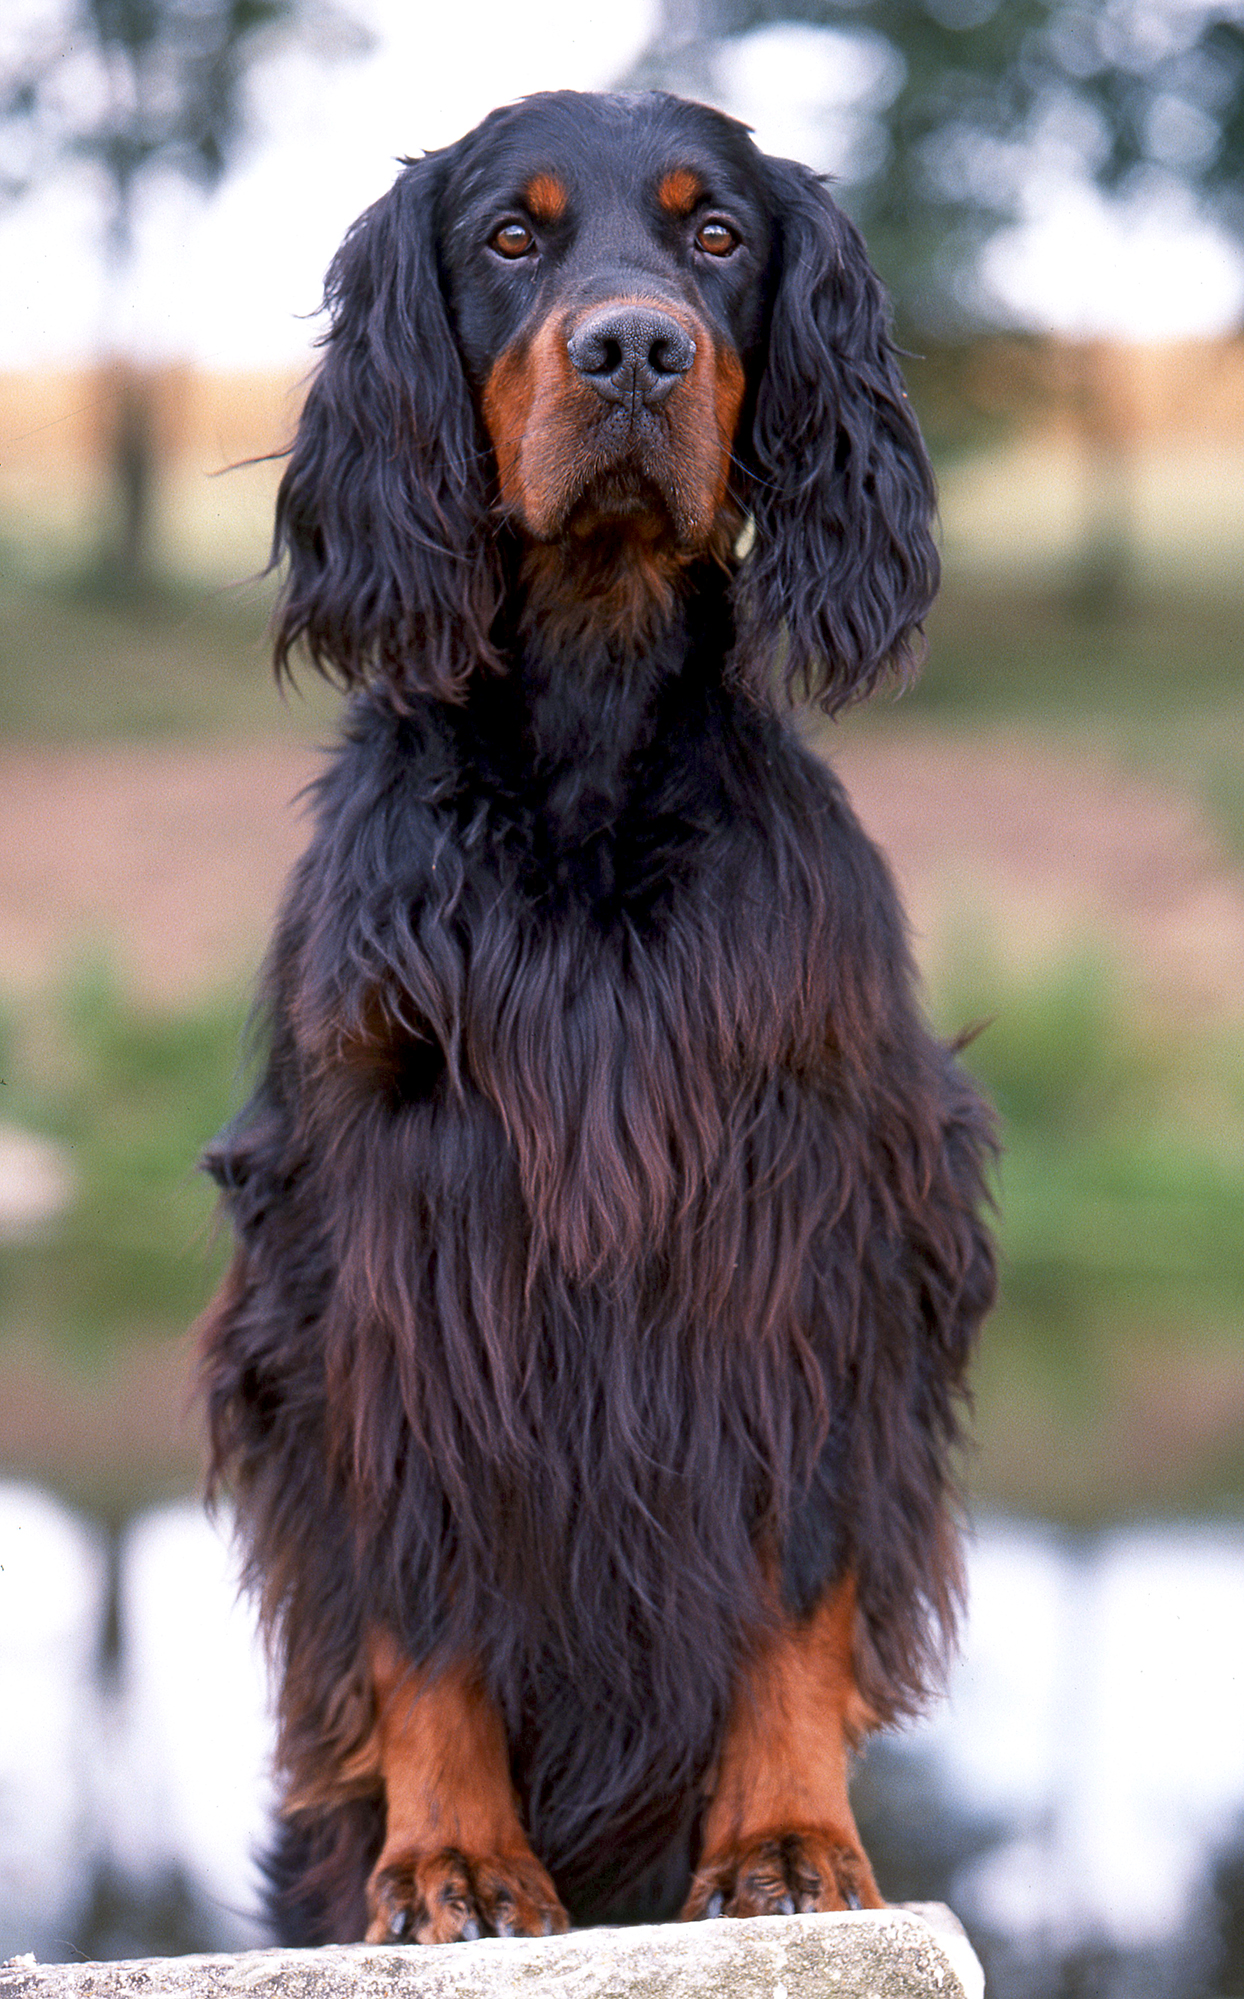 closeup of a gordon setter standing with their paws on a cement surface